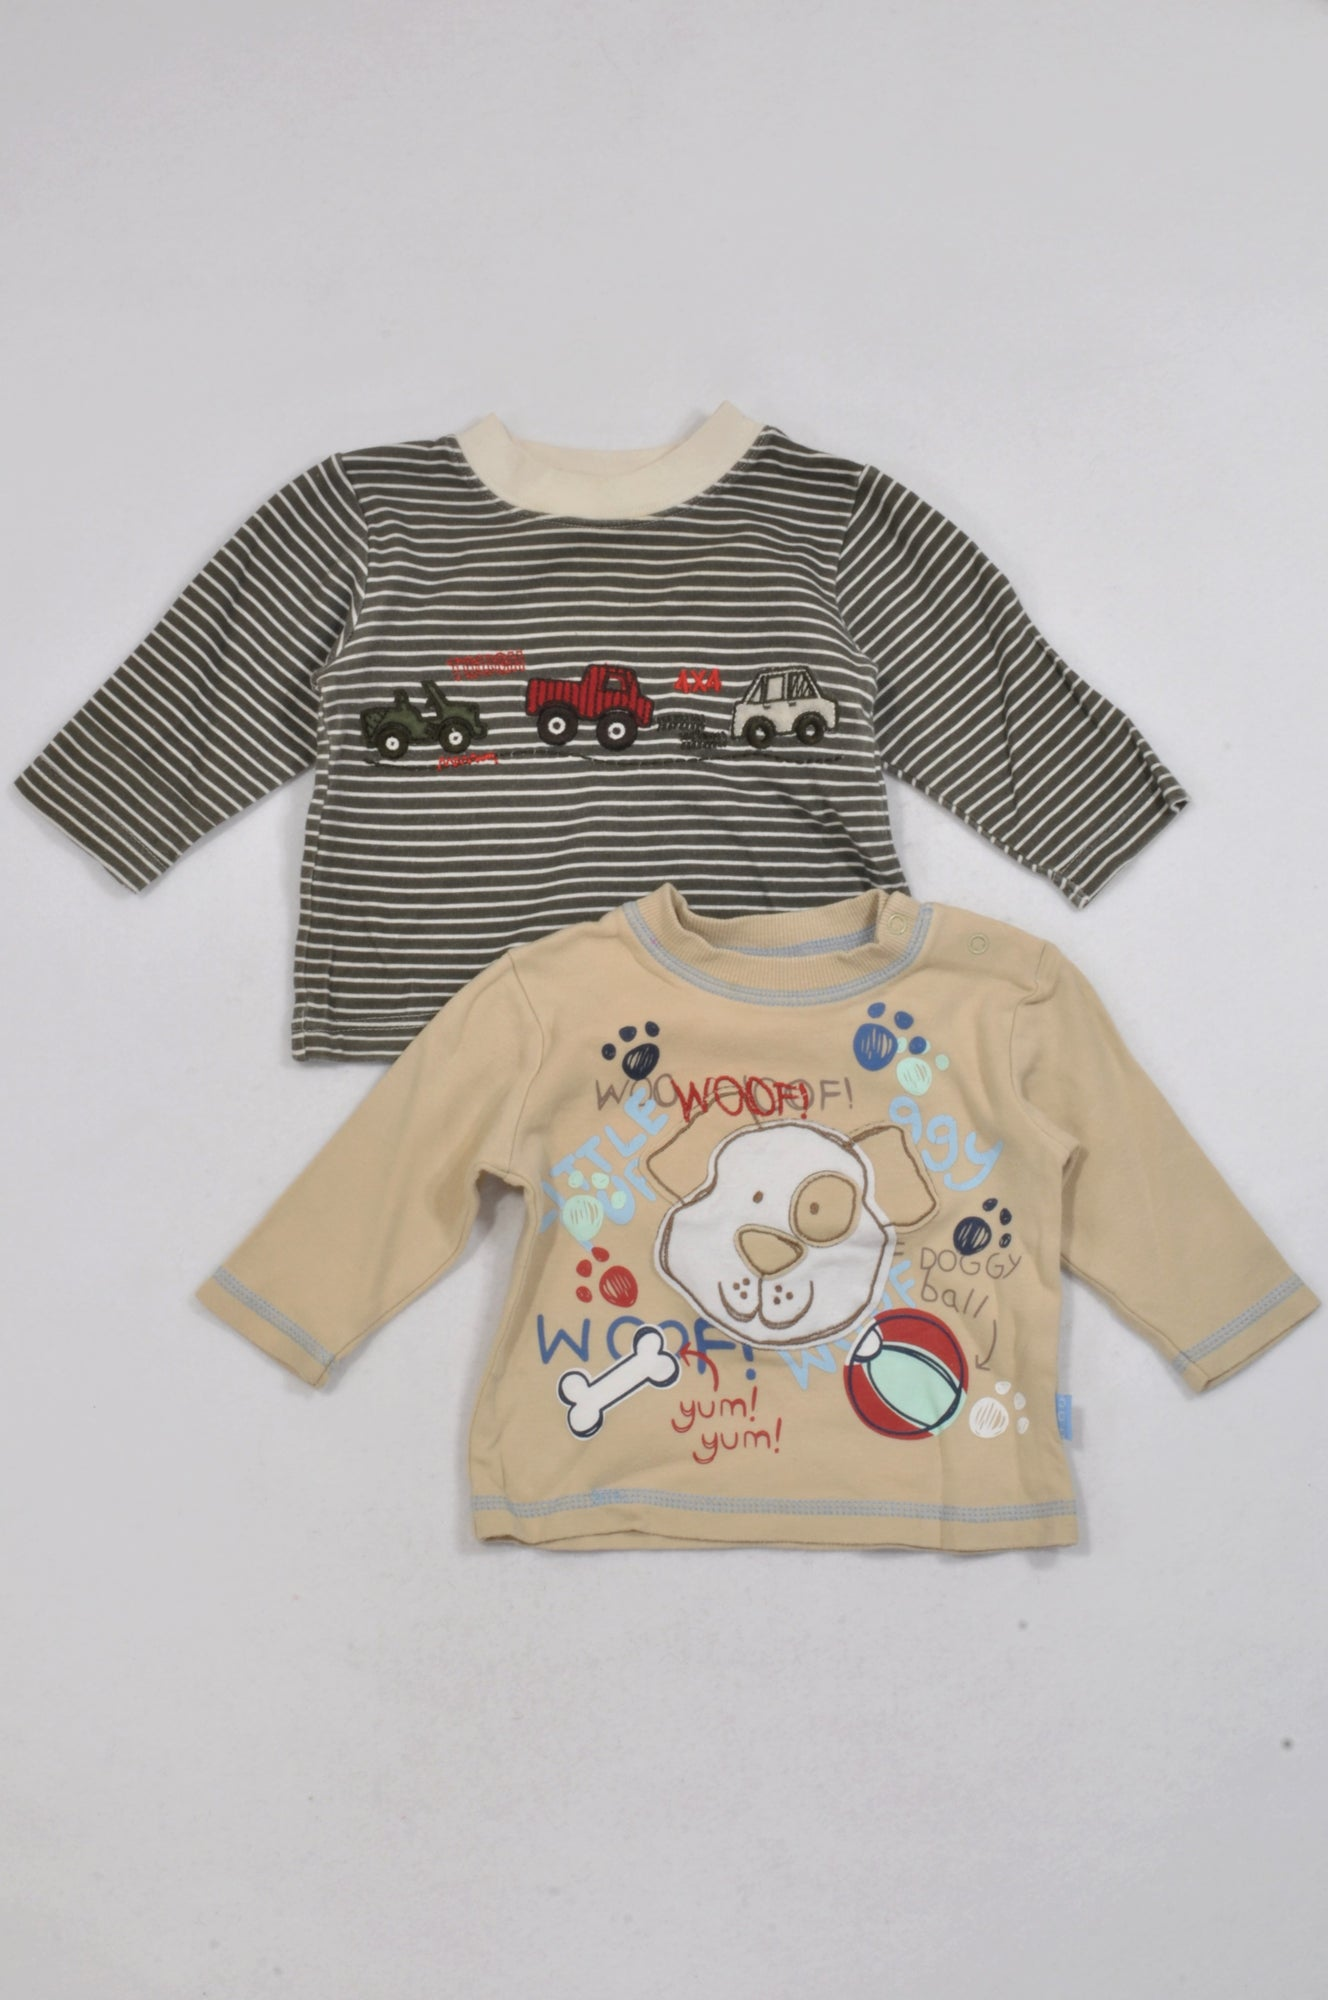 Ackermans 2 Pack Brown & Olive Woof! T-Shirts Boys 3-6 months